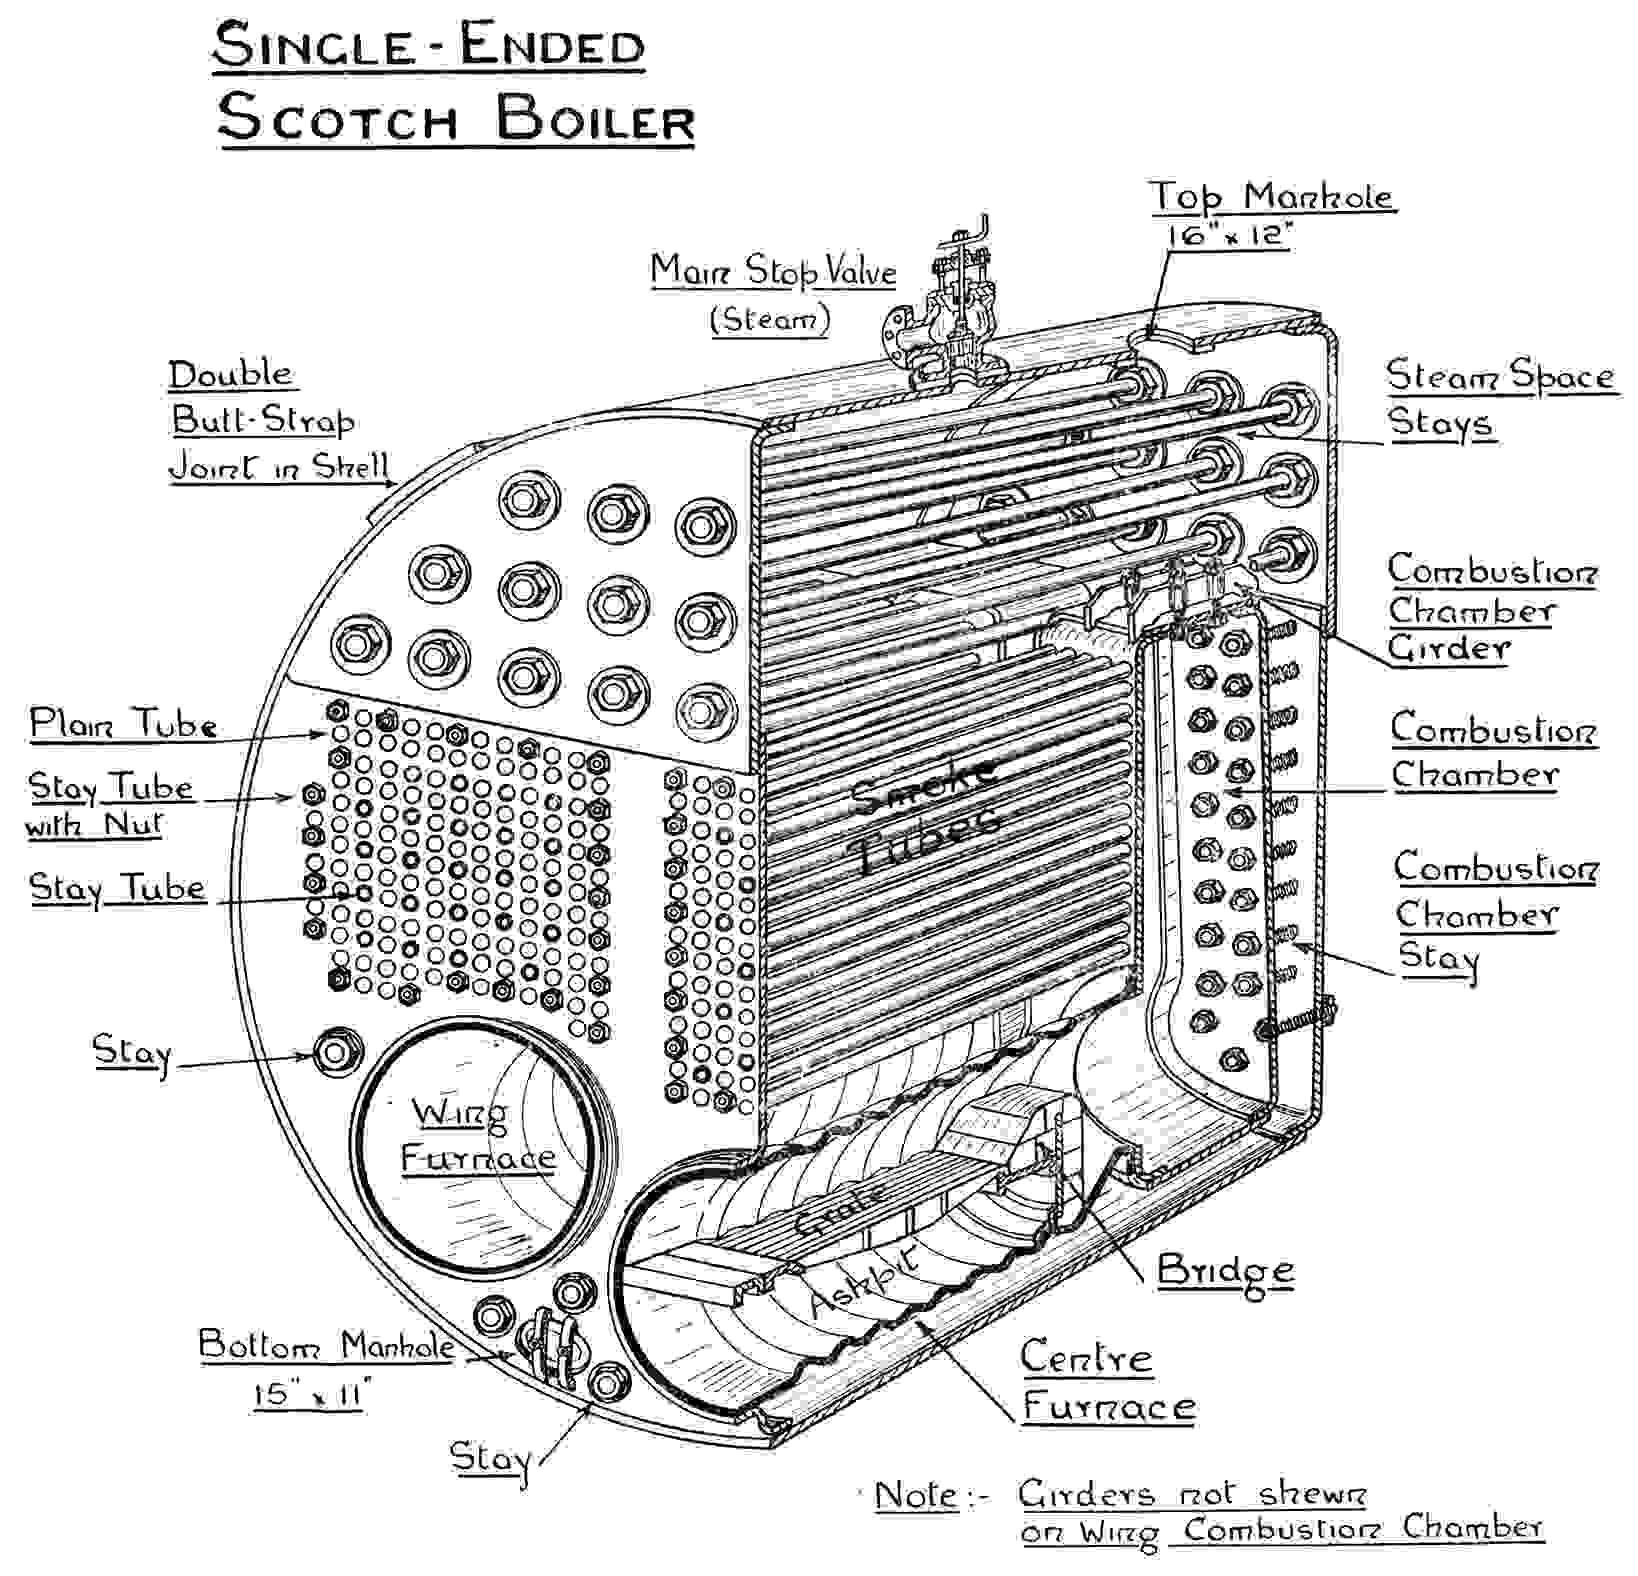 cutaway_drawing_of_a_single_ended_scotch_boiler